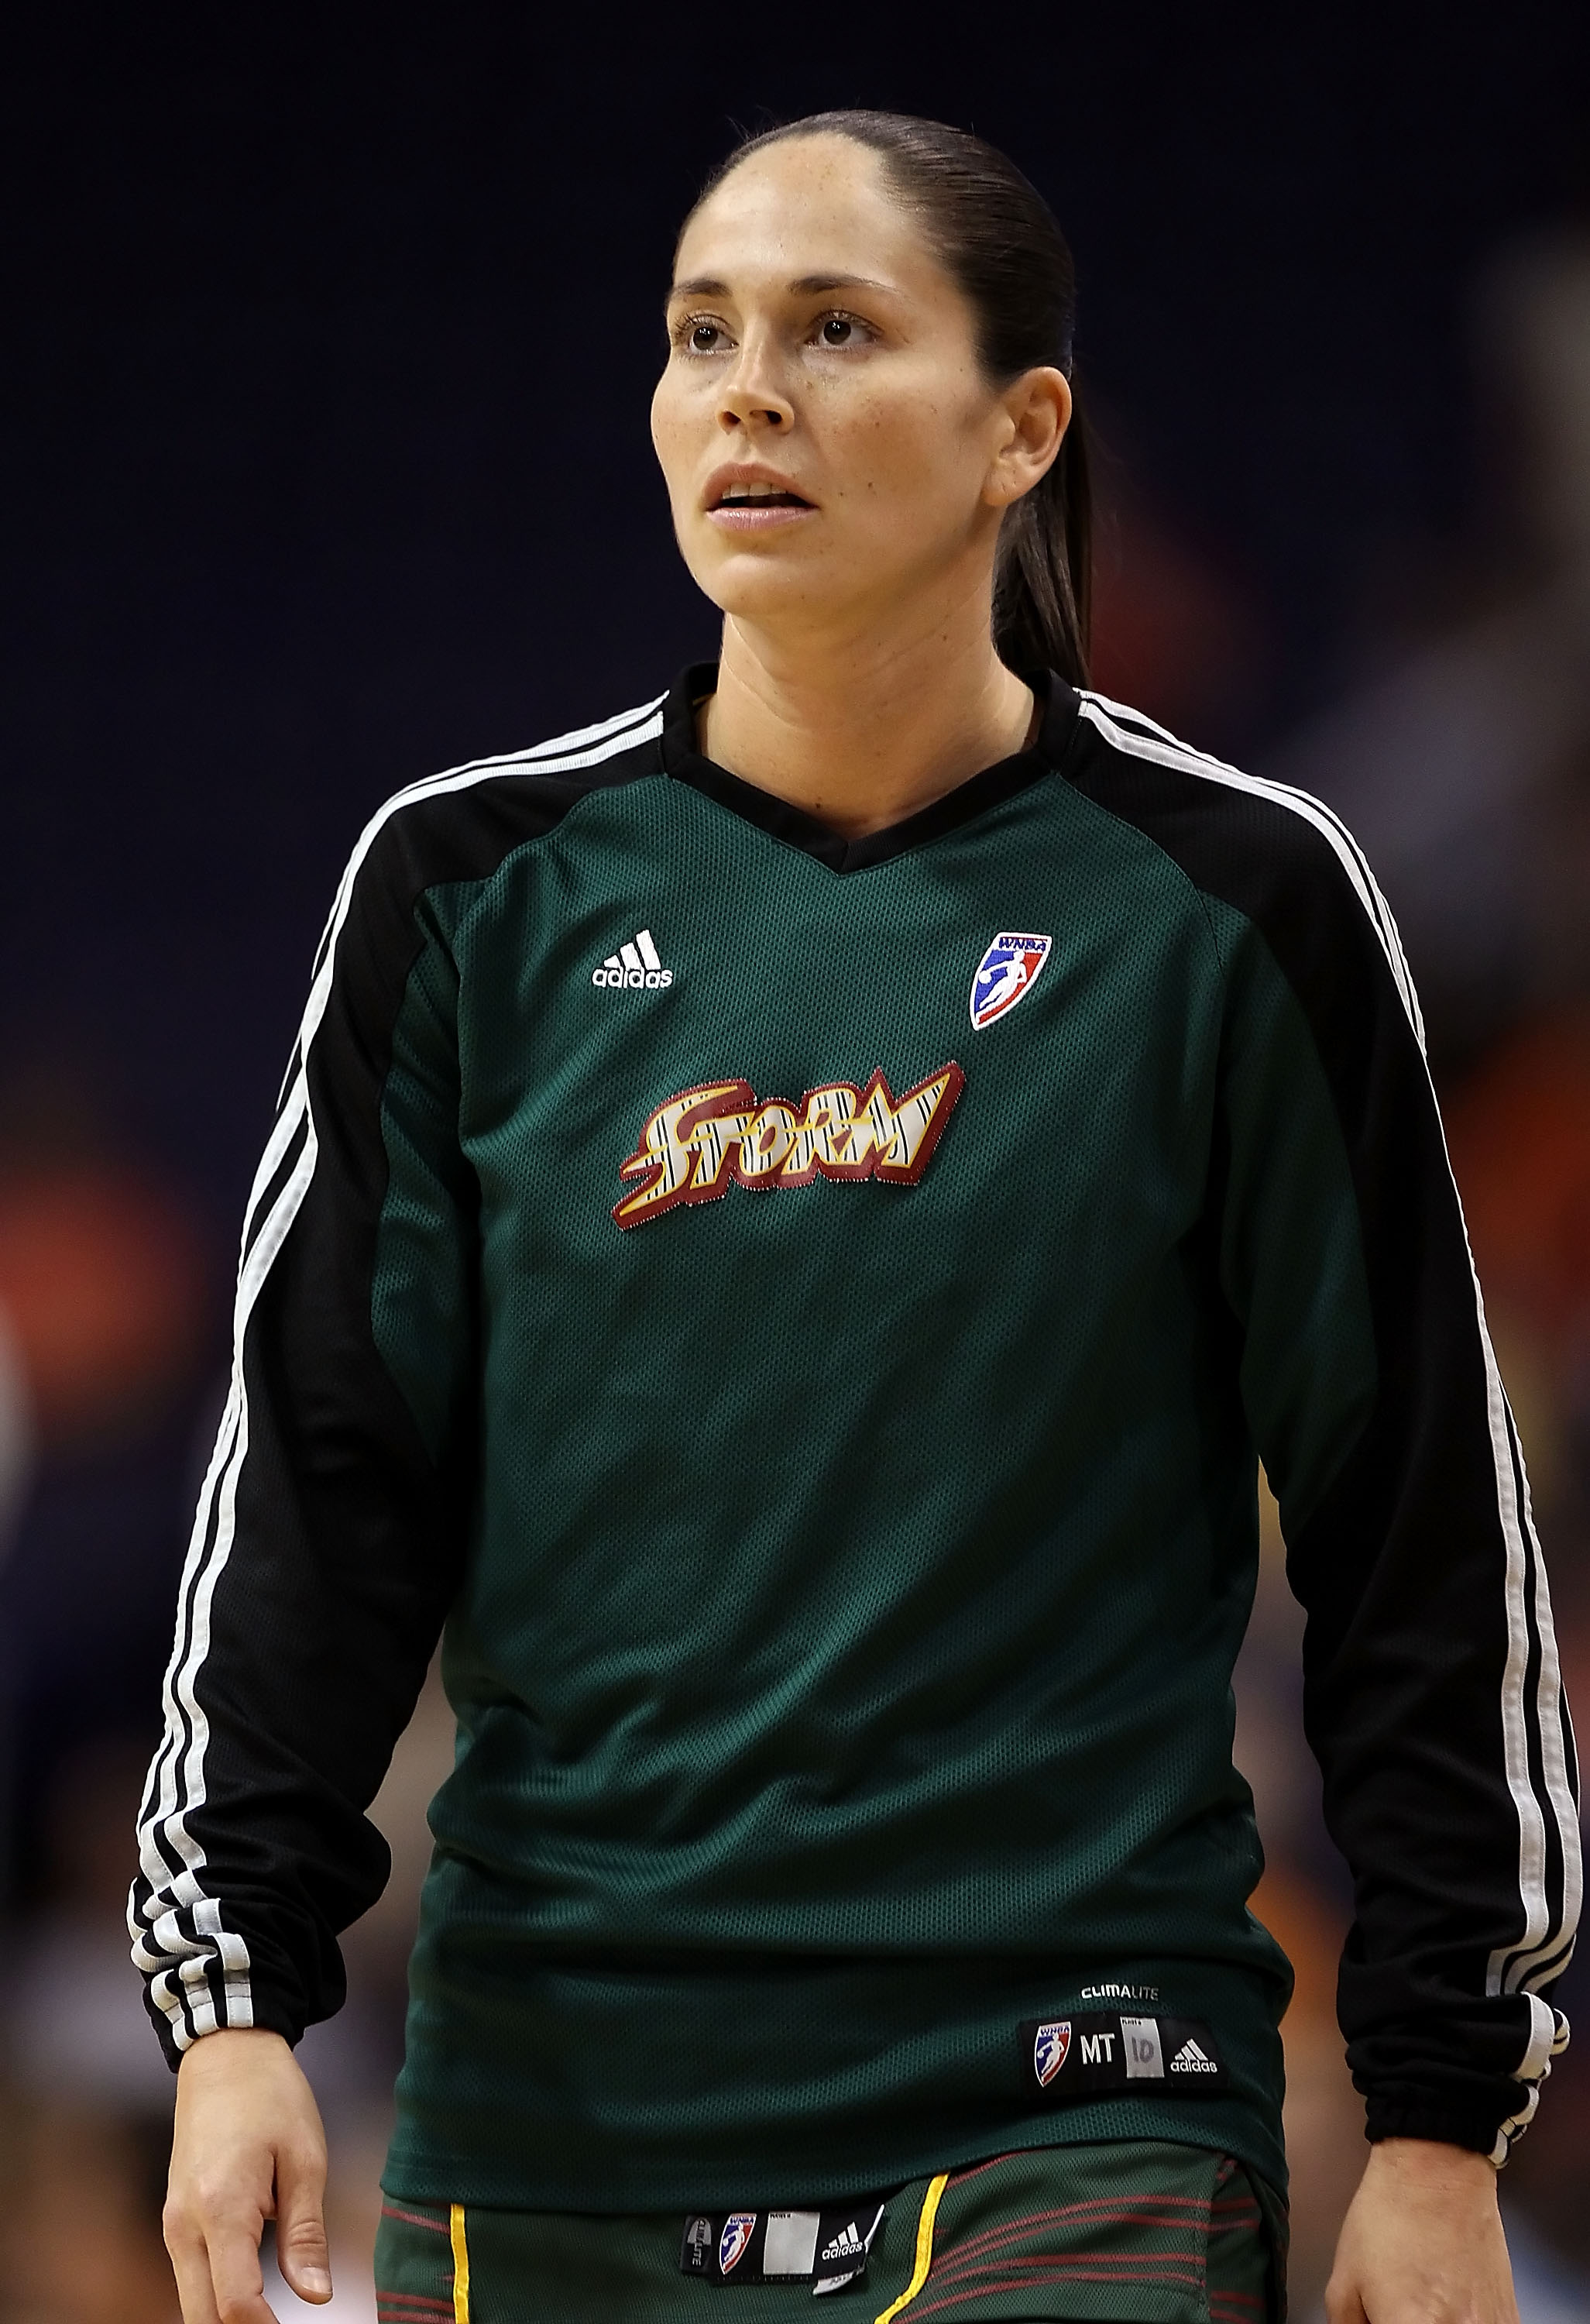 PHOENIX - JULY 14:  Sue Bird #10 of the Seattle Storm warms up before the WNBA game against the Phoenix Mercury at US Airways Center on July 14, 2010 in Phoenix, Arizona. The Storm defeated the Mercury 111-107 in triple overtime.  NOTE TO USER: User expre